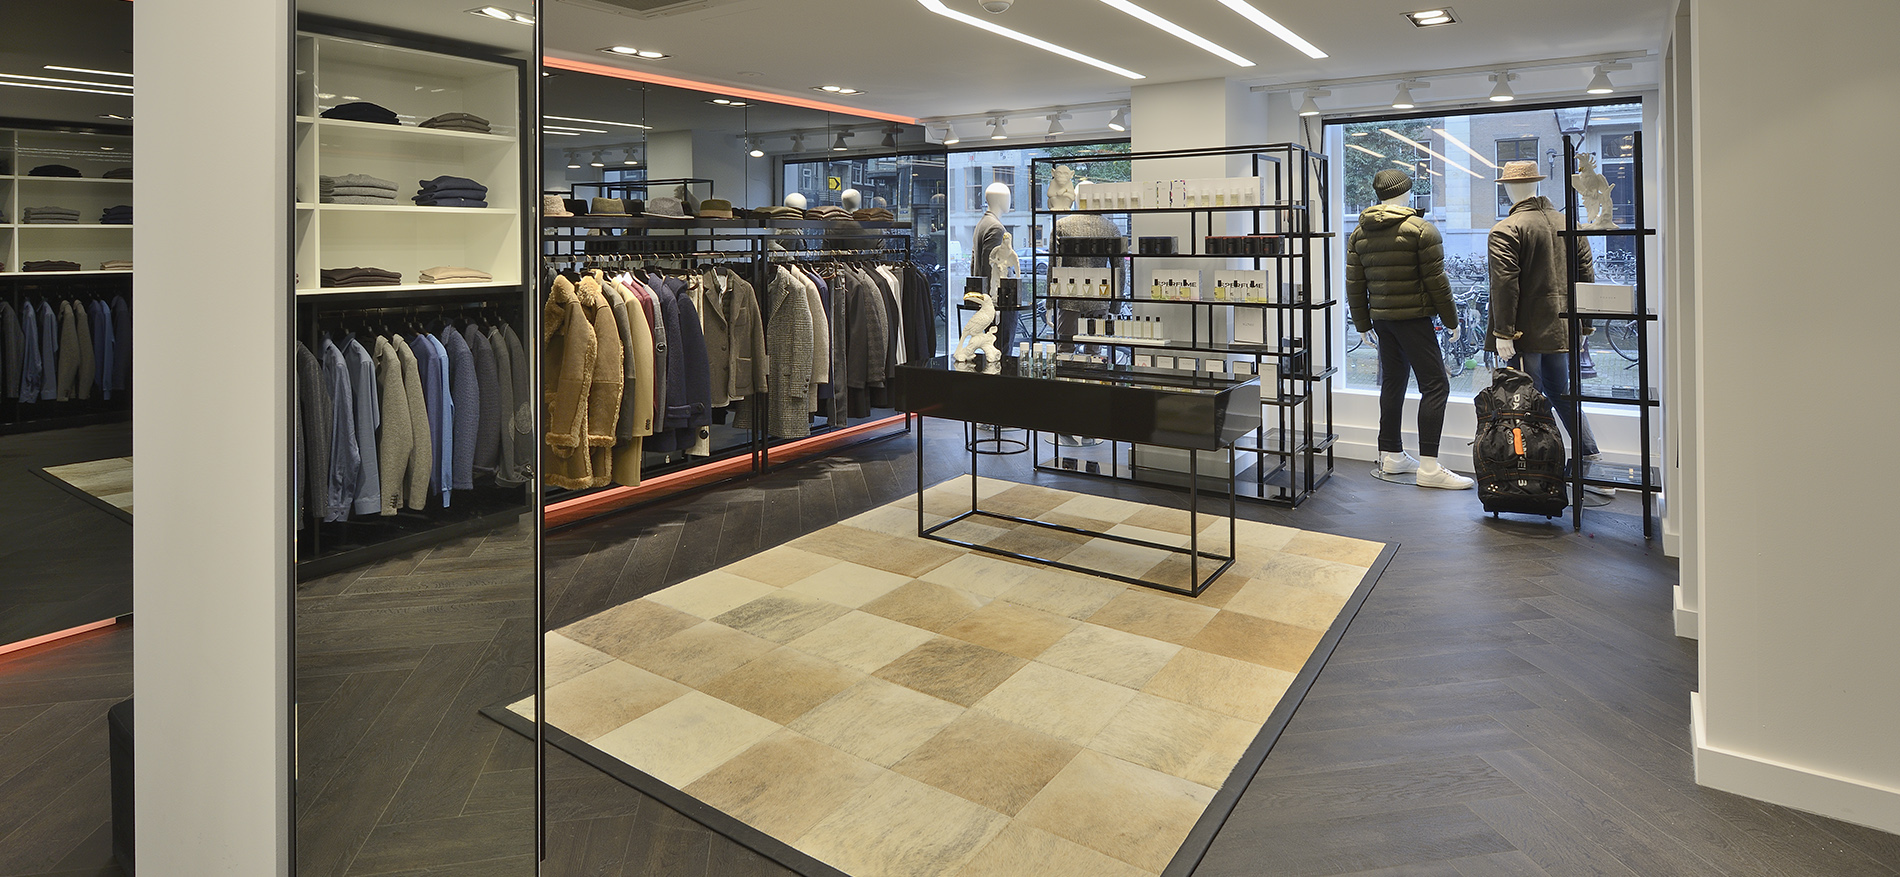 Store design for luxury fashion brands: Kings Square - Amsterdam